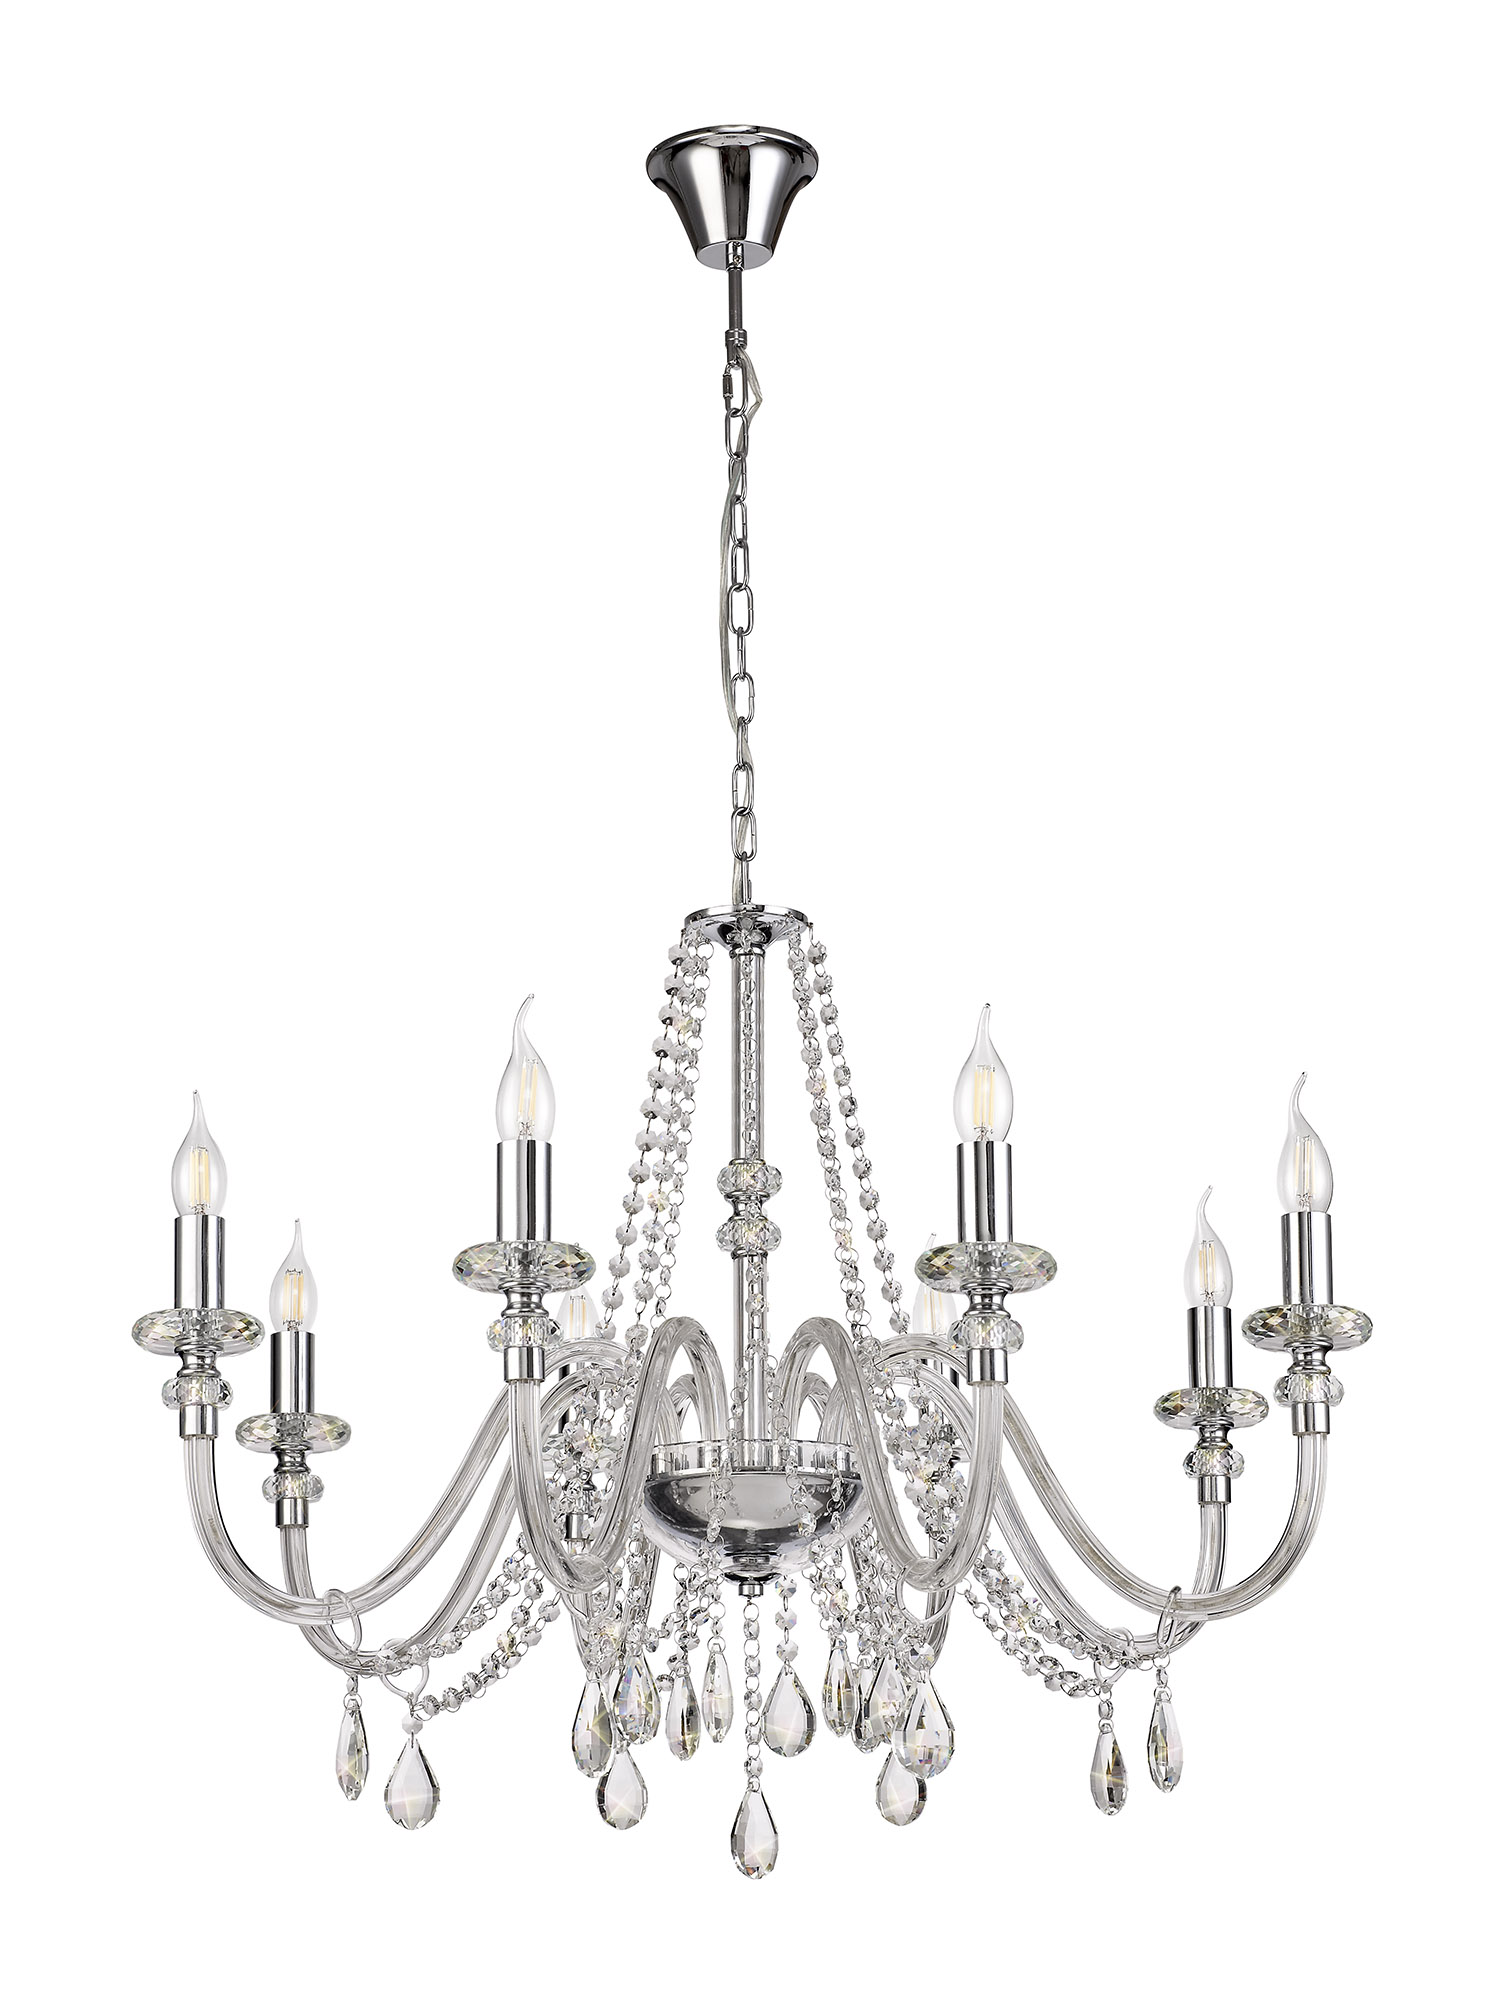 Chandelier Pendant, 8 Light E14, Polished Chrome/Clear Glass/Crystal, (ITEM REQUIRES CONSTRUCTION/CONNECTION)